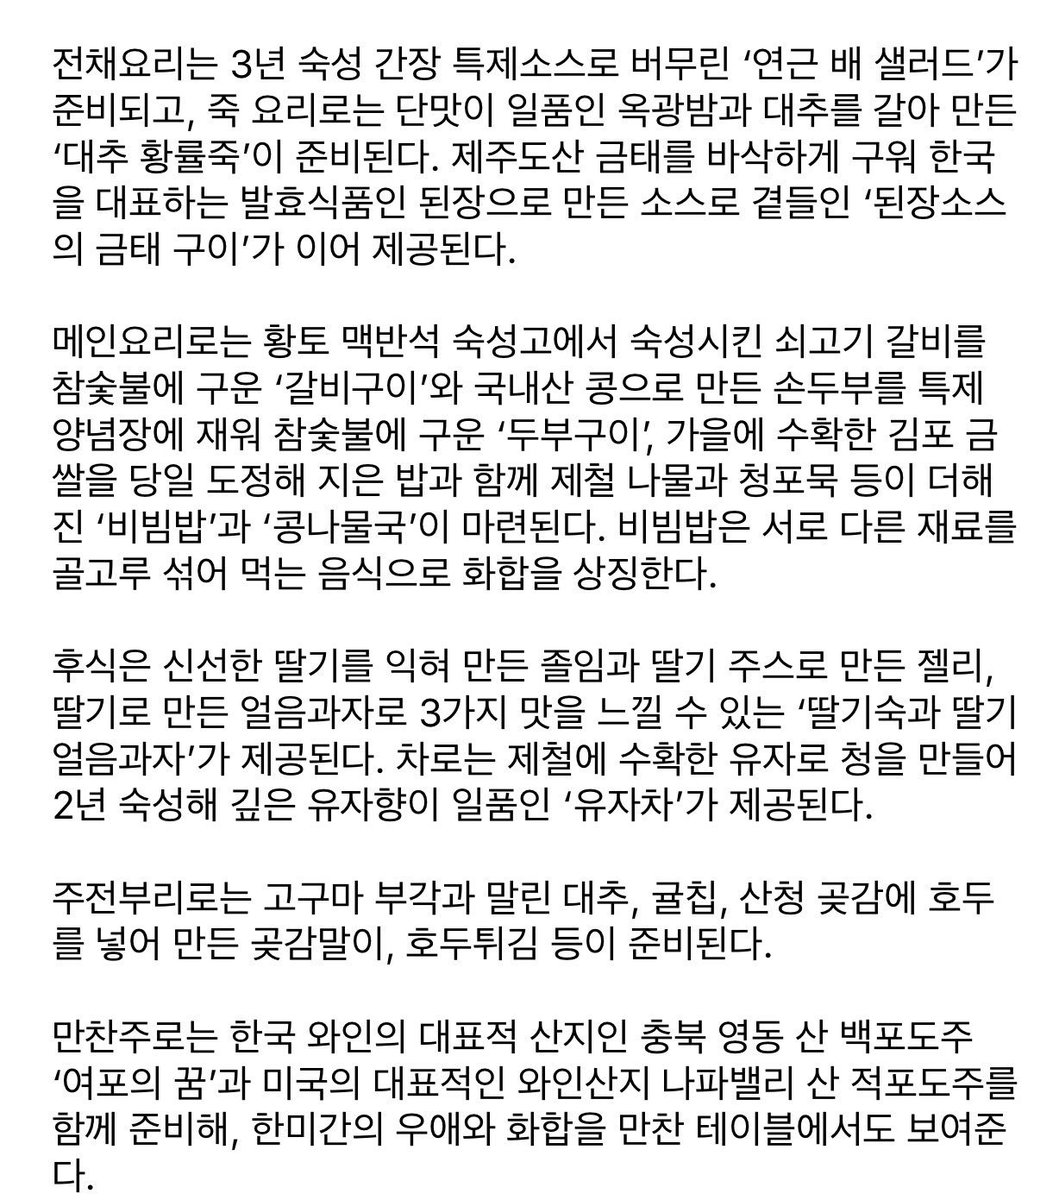 """Ivanka Trump's dinner at the South Korean Blue House is a """"delicately prepared"""" kosher feast that includes bibimbap to """"symbolize harmony"""""""